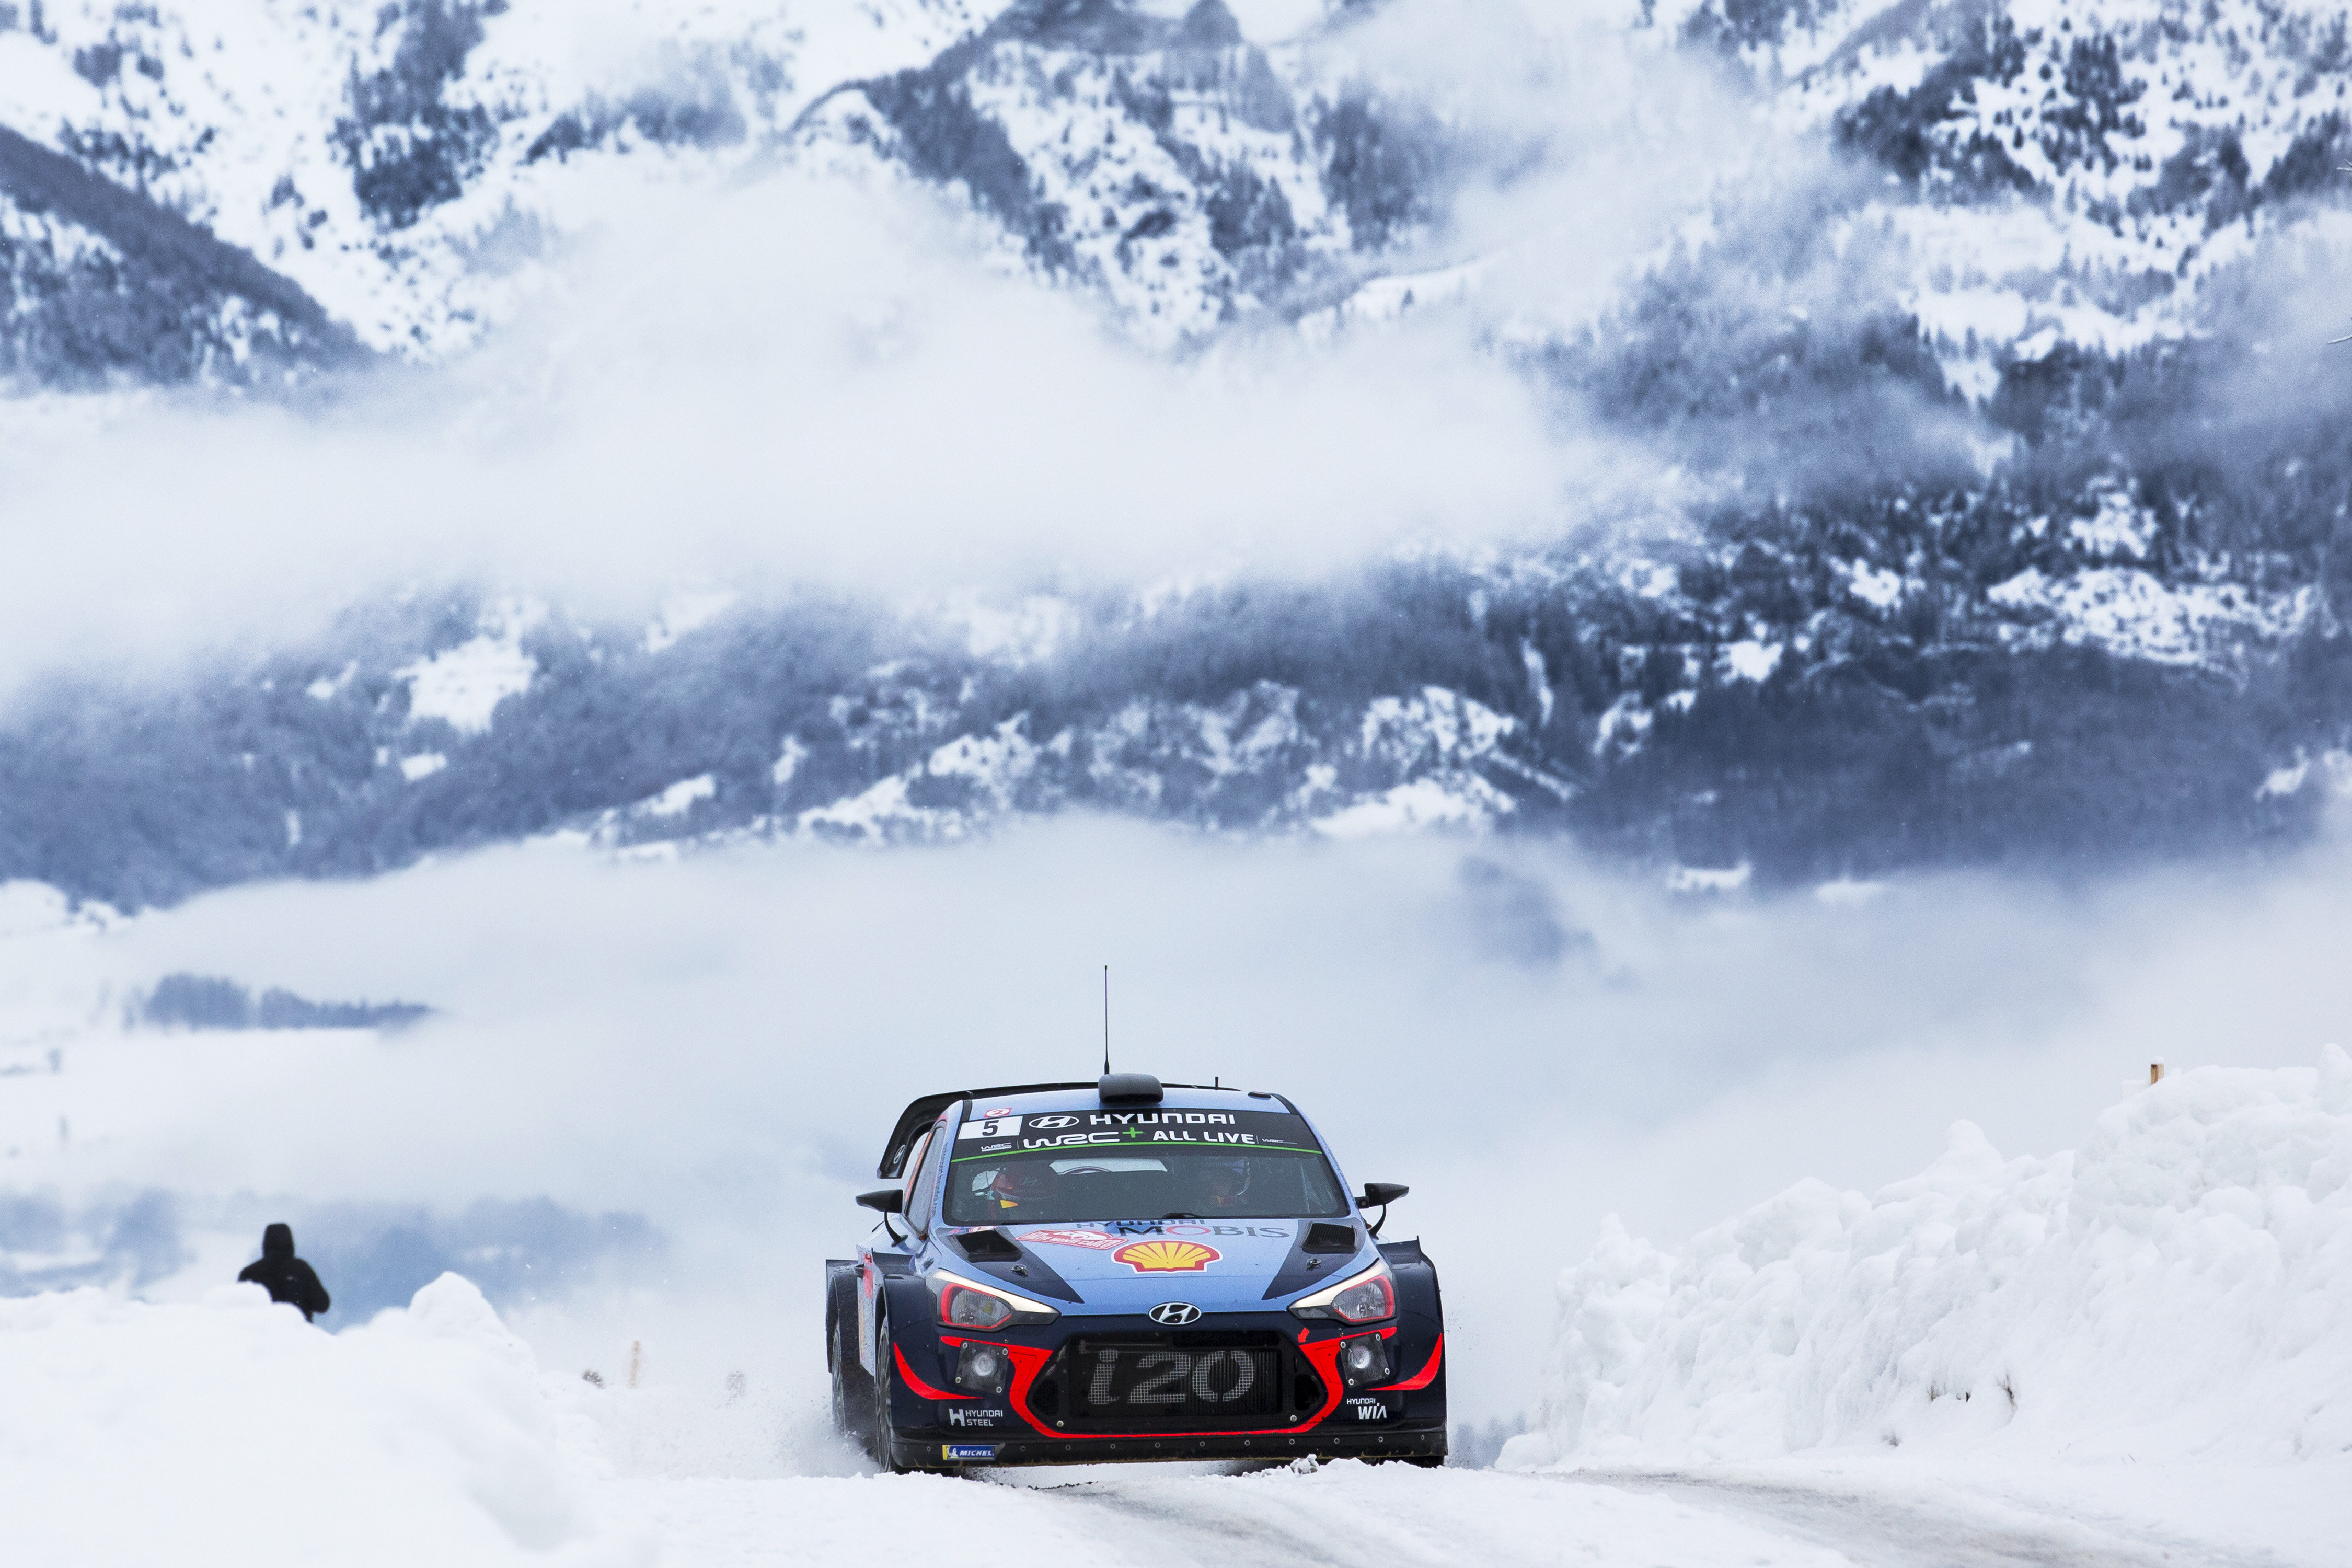 rallye monte carlo day three seb steers clear of trouble thepitcrewonline. Black Bedroom Furniture Sets. Home Design Ideas